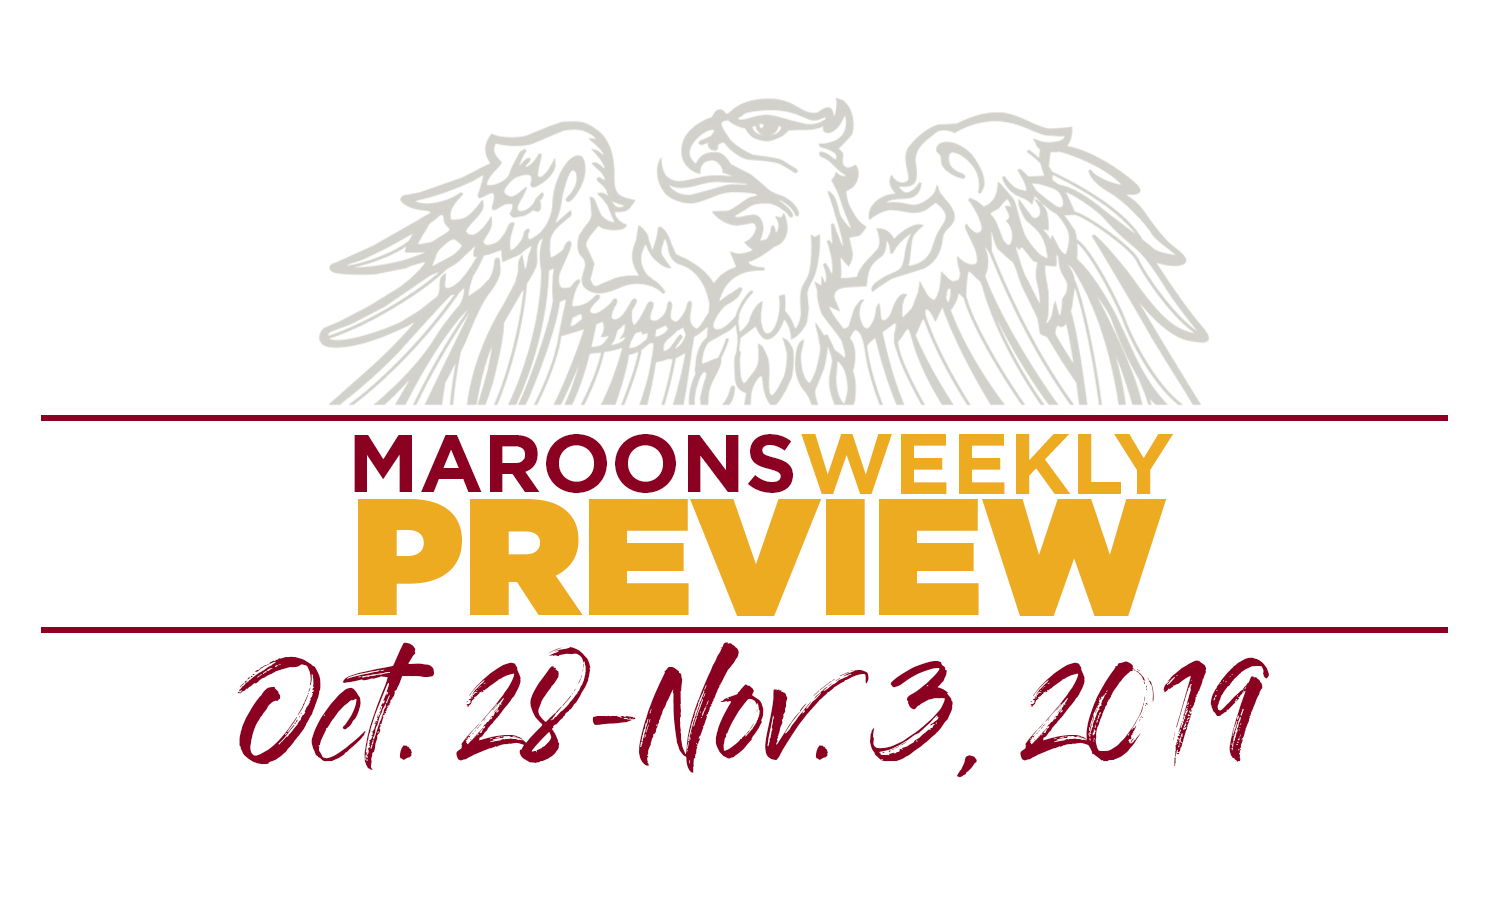 UChicago Athletics Preview: October 28 - November 3